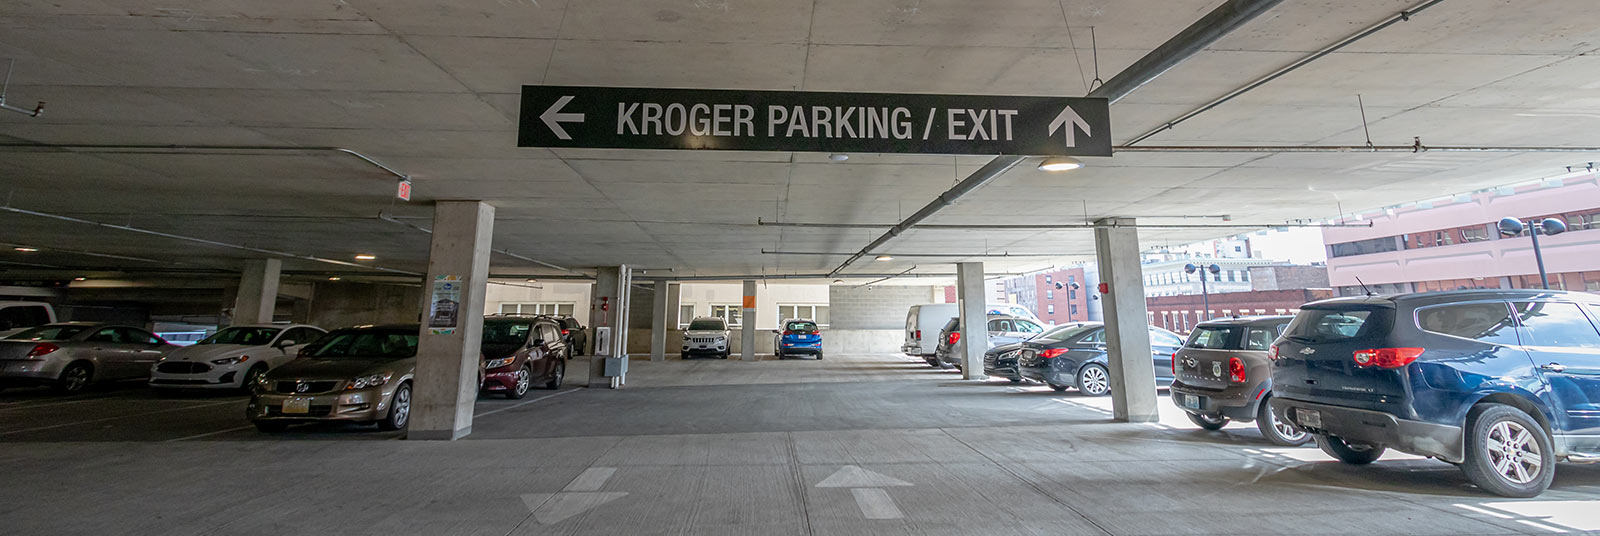 Inside the parking structure at 1010 On The Rhine in Cincinnati, Ohio.